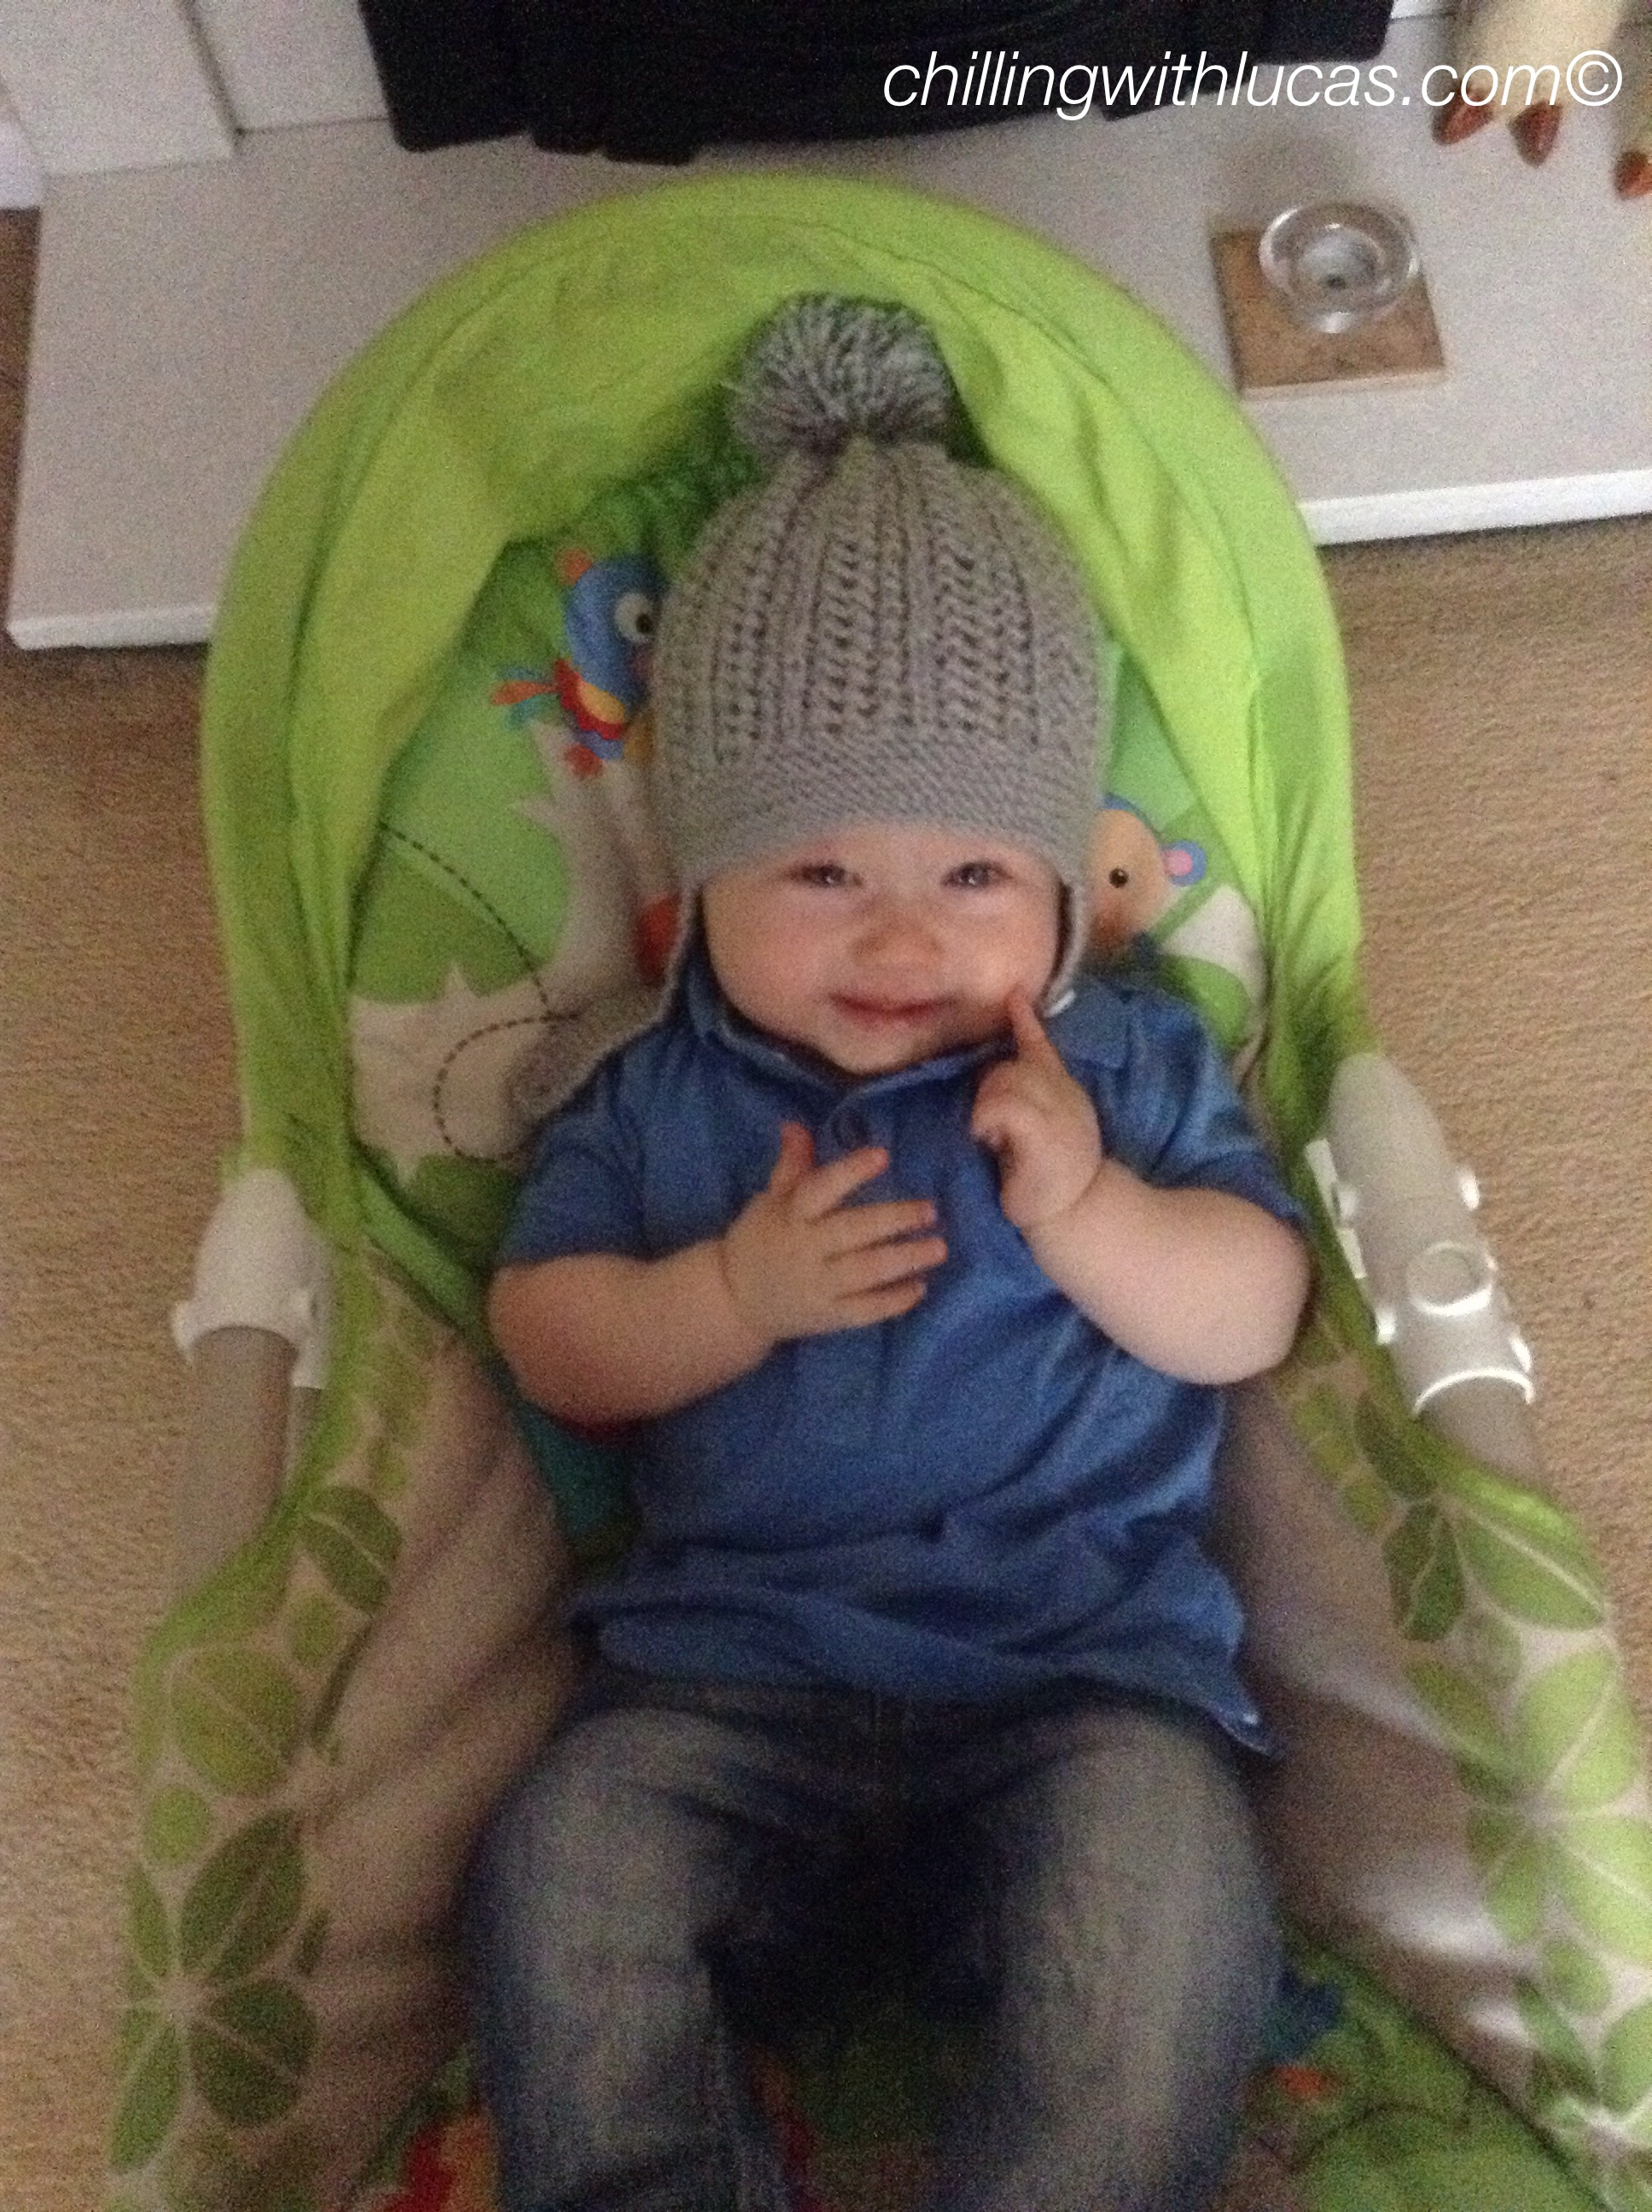 lucas is sat in his chair looking up at the camera wearing a blue polo shirt, faded jeans and grey knitted hat